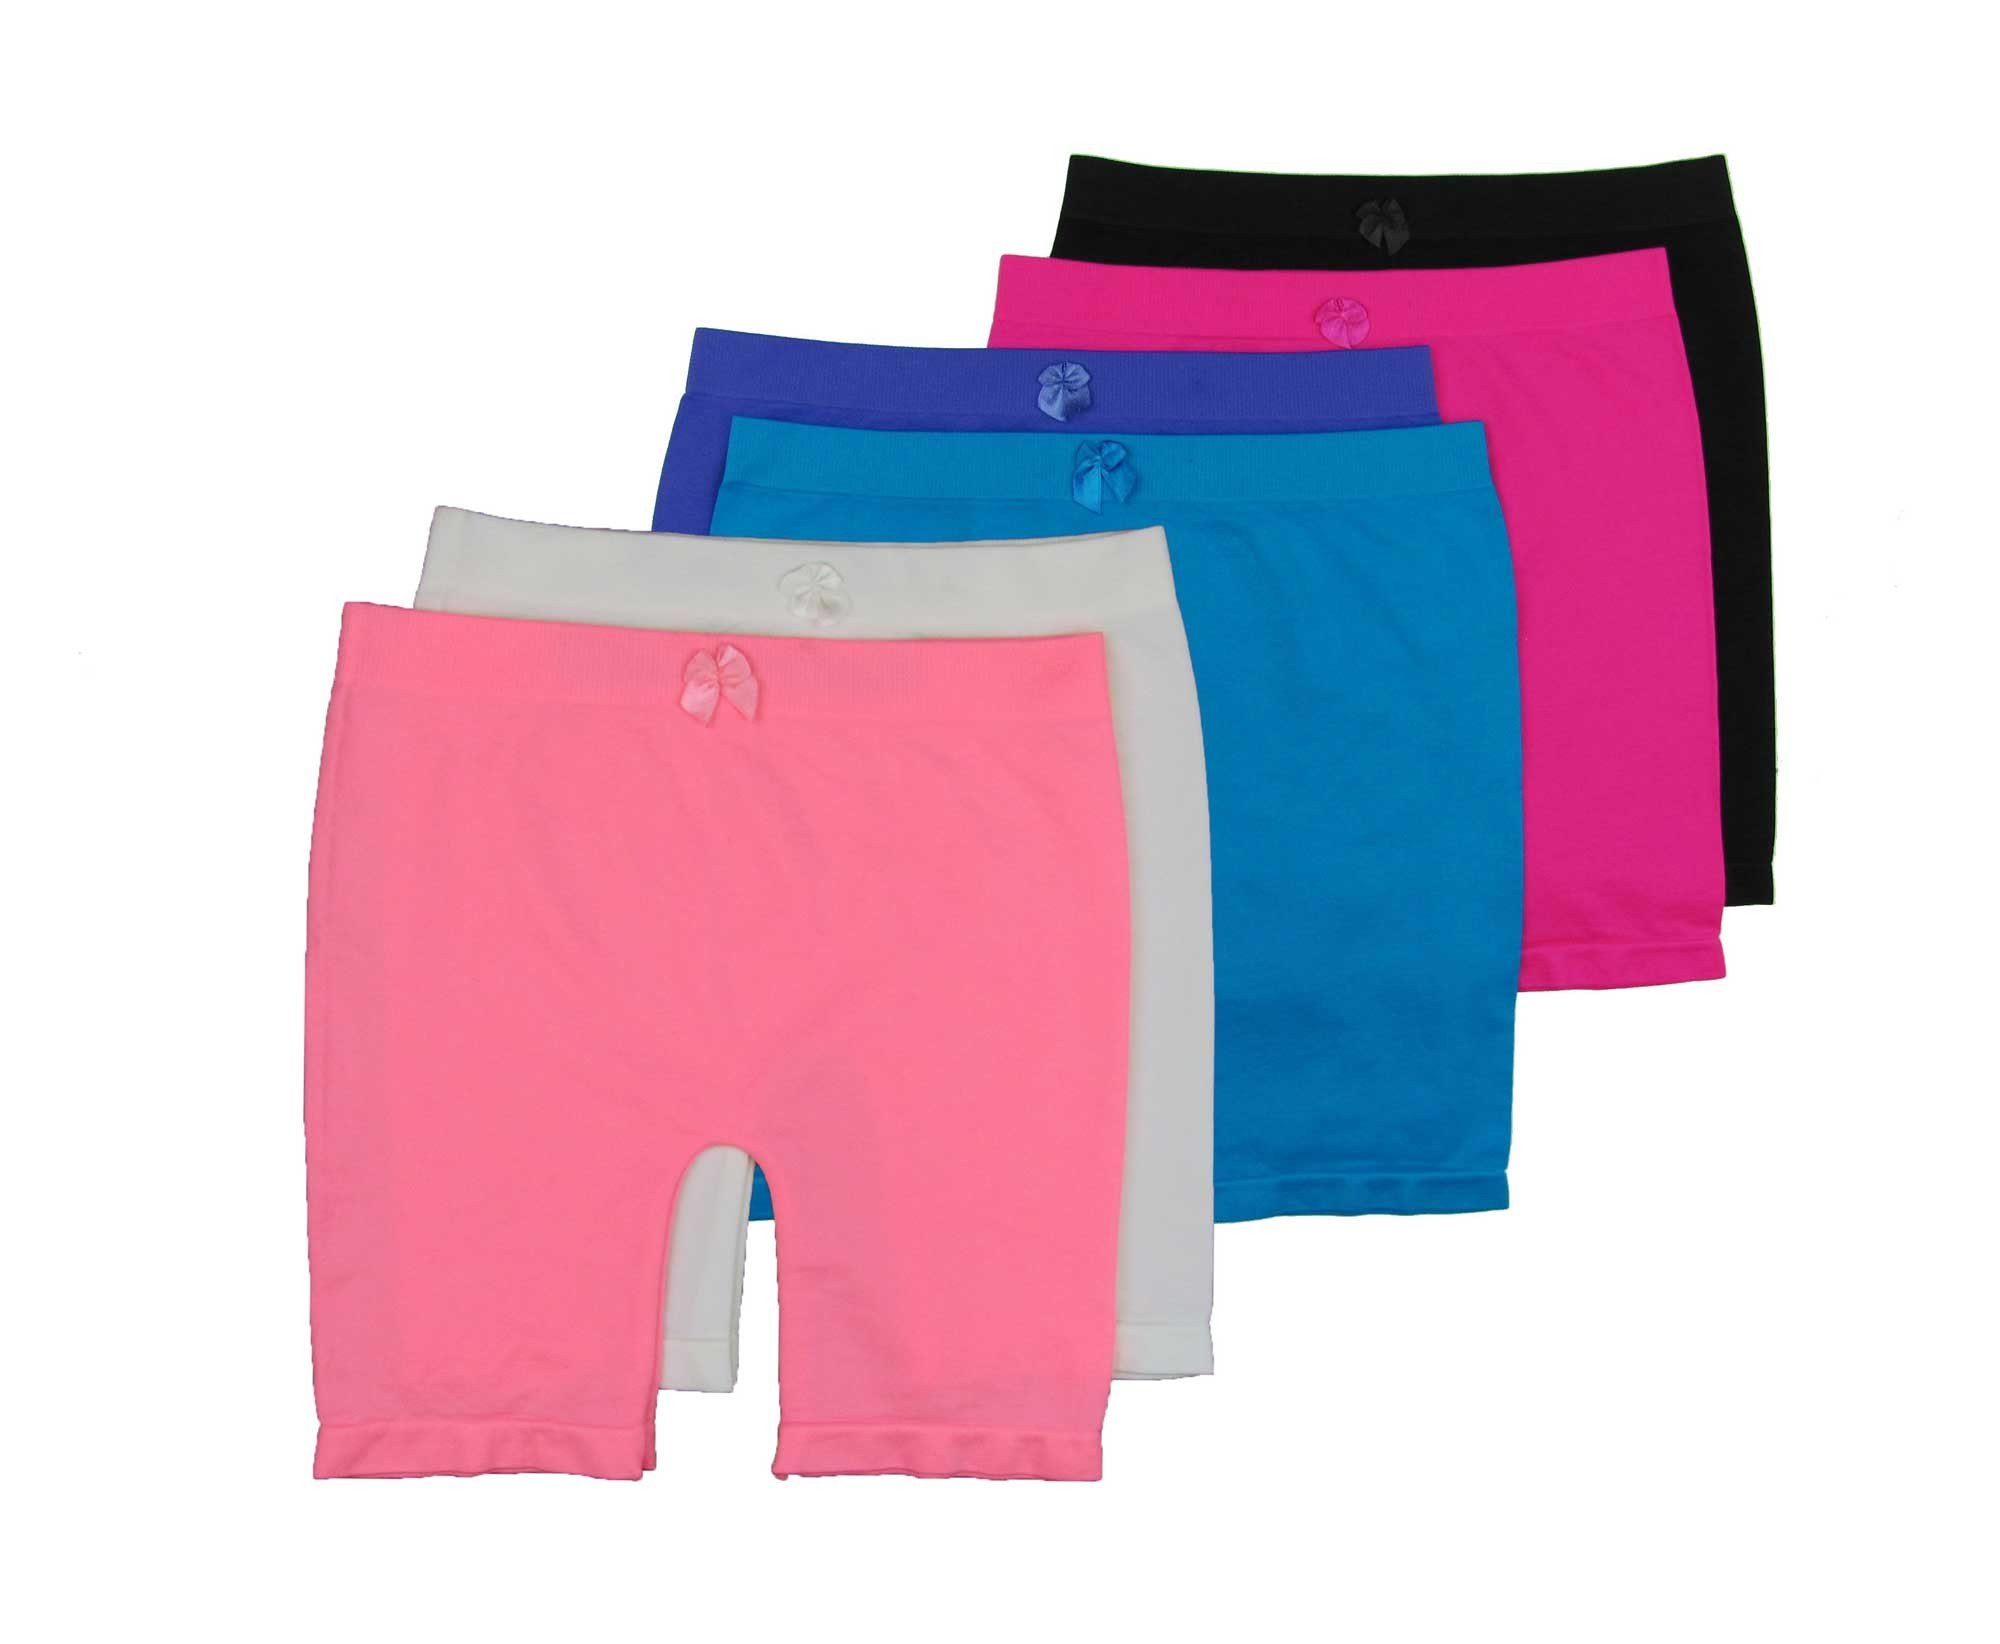 Gilbins Girls Above Knee Seamless Solid Colors Nylon Bike Shorts for Sports Or Under Skirts, 6 Pack (Medium(8-11), Solid)